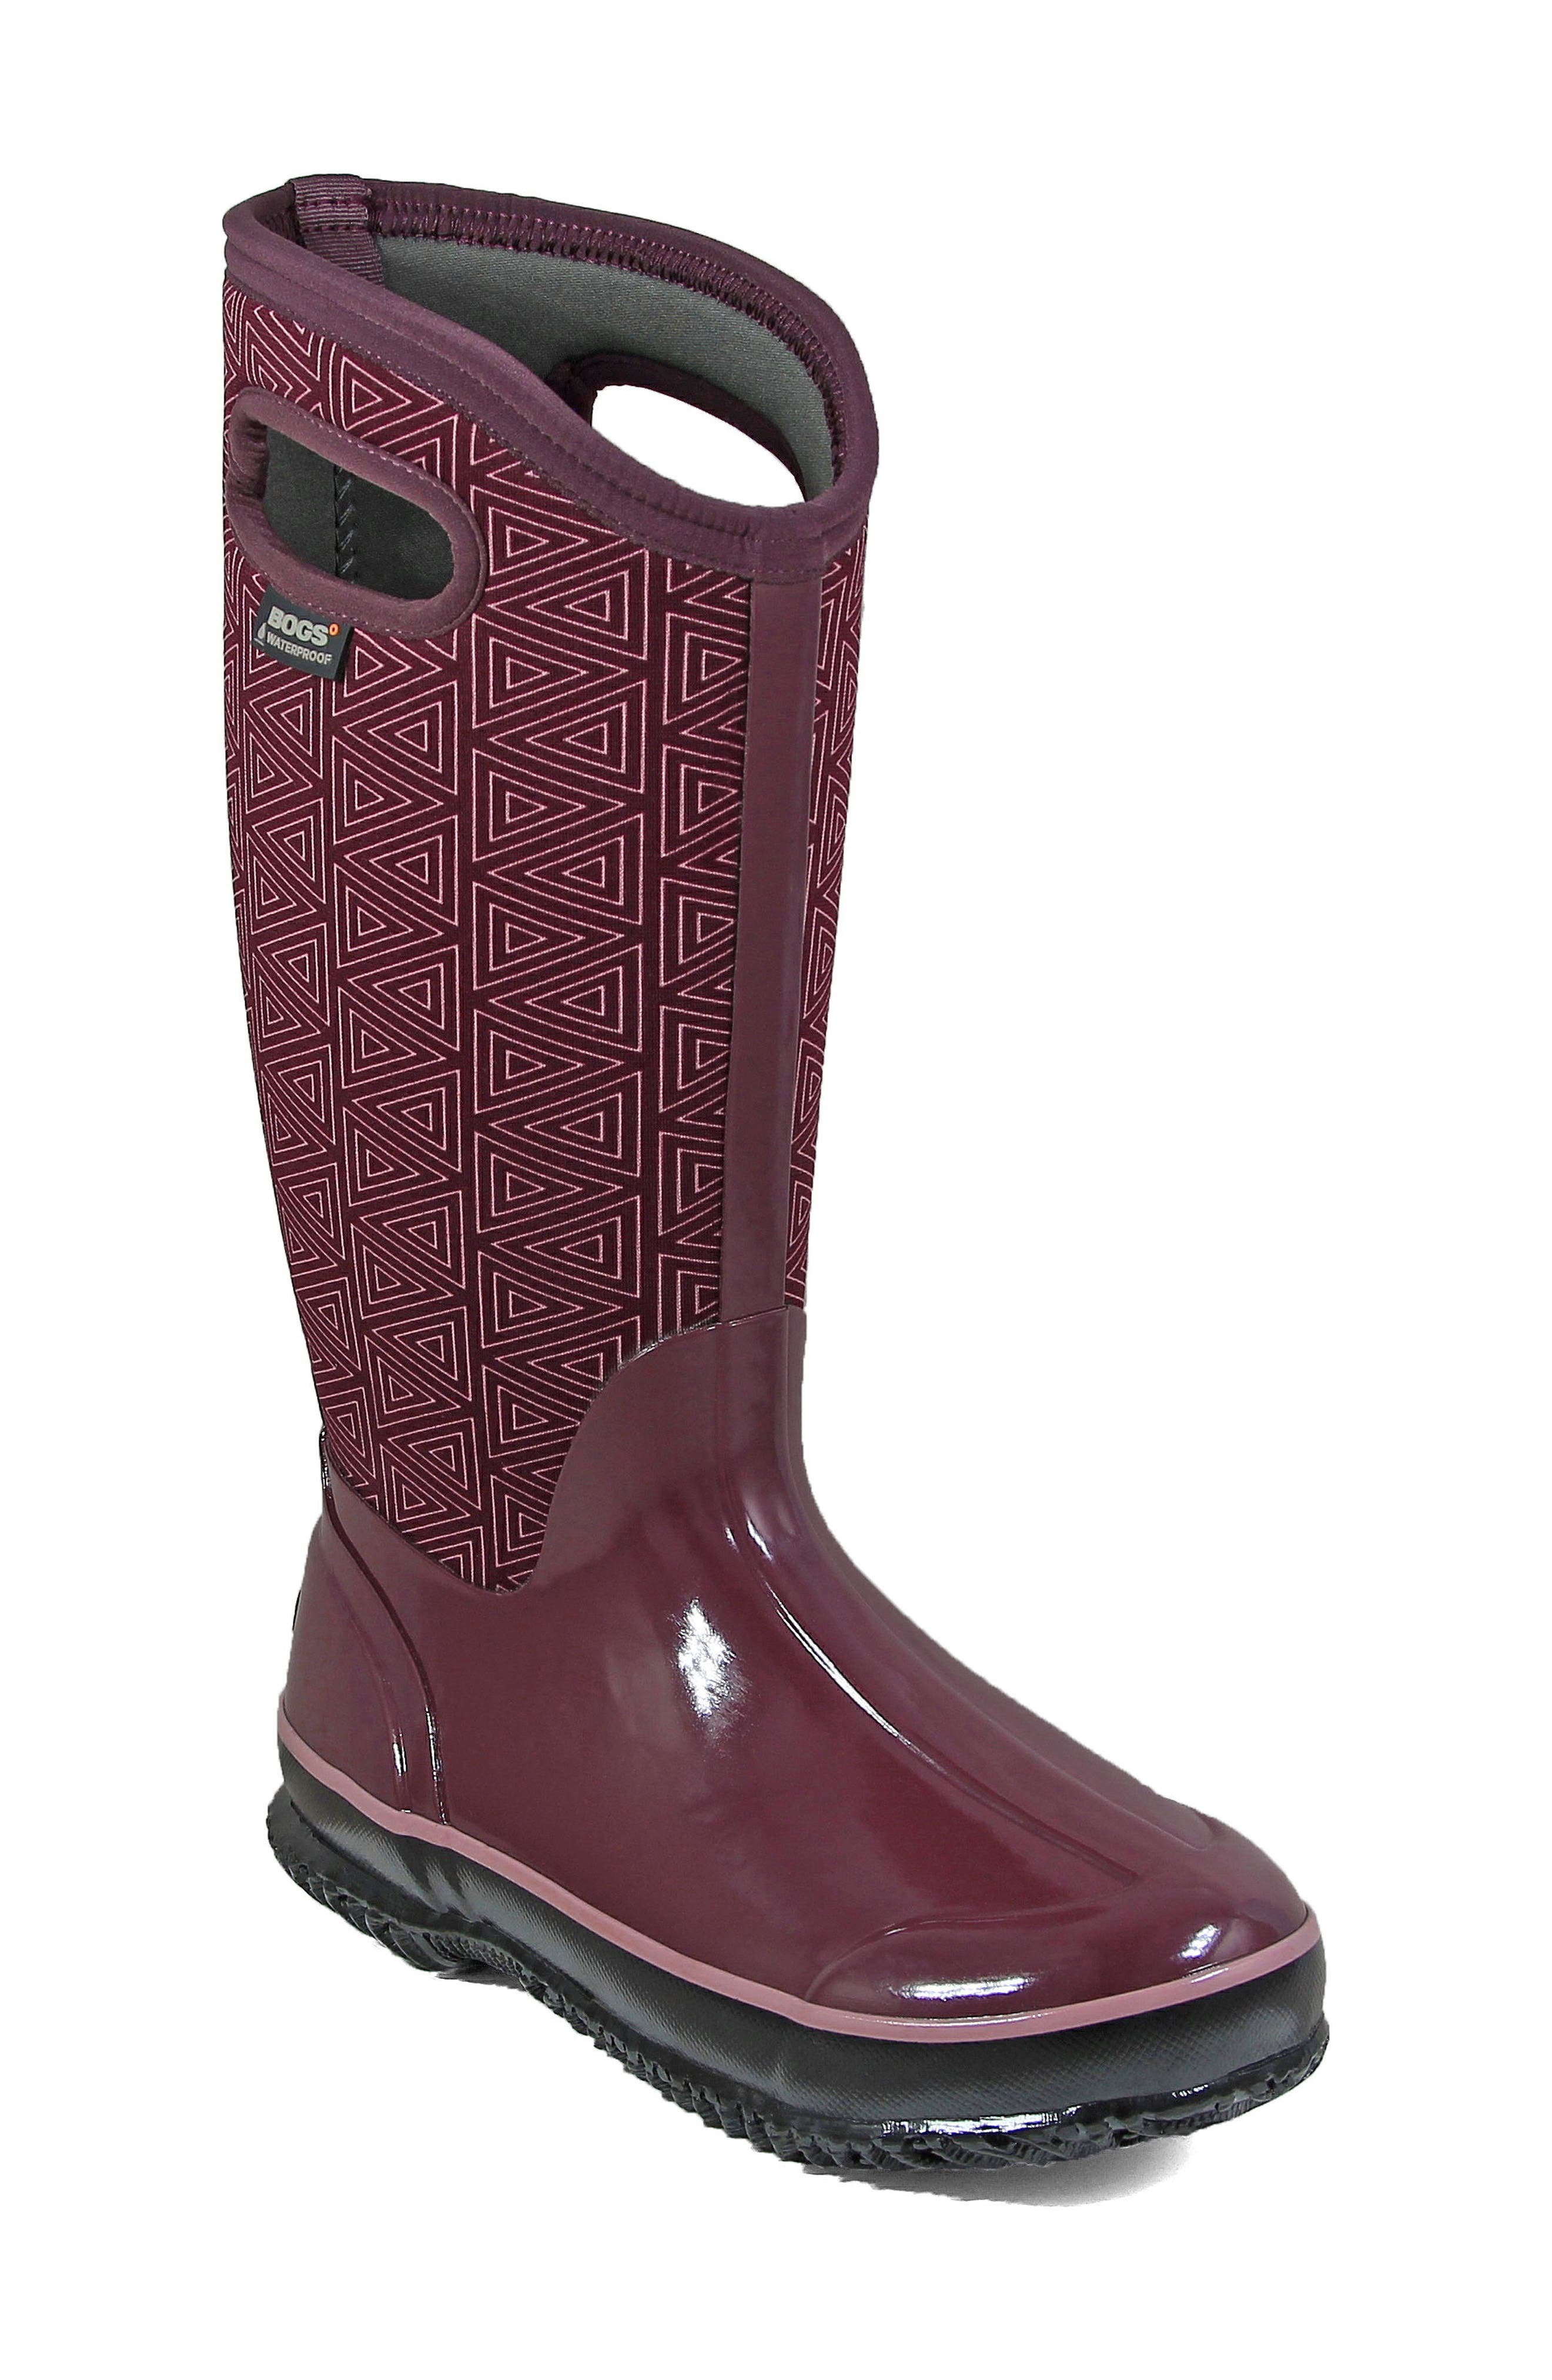 Alternate Image 1 Selected - Bogs Classic Triangles Waterproof Subzero Insulated Boot (Women)